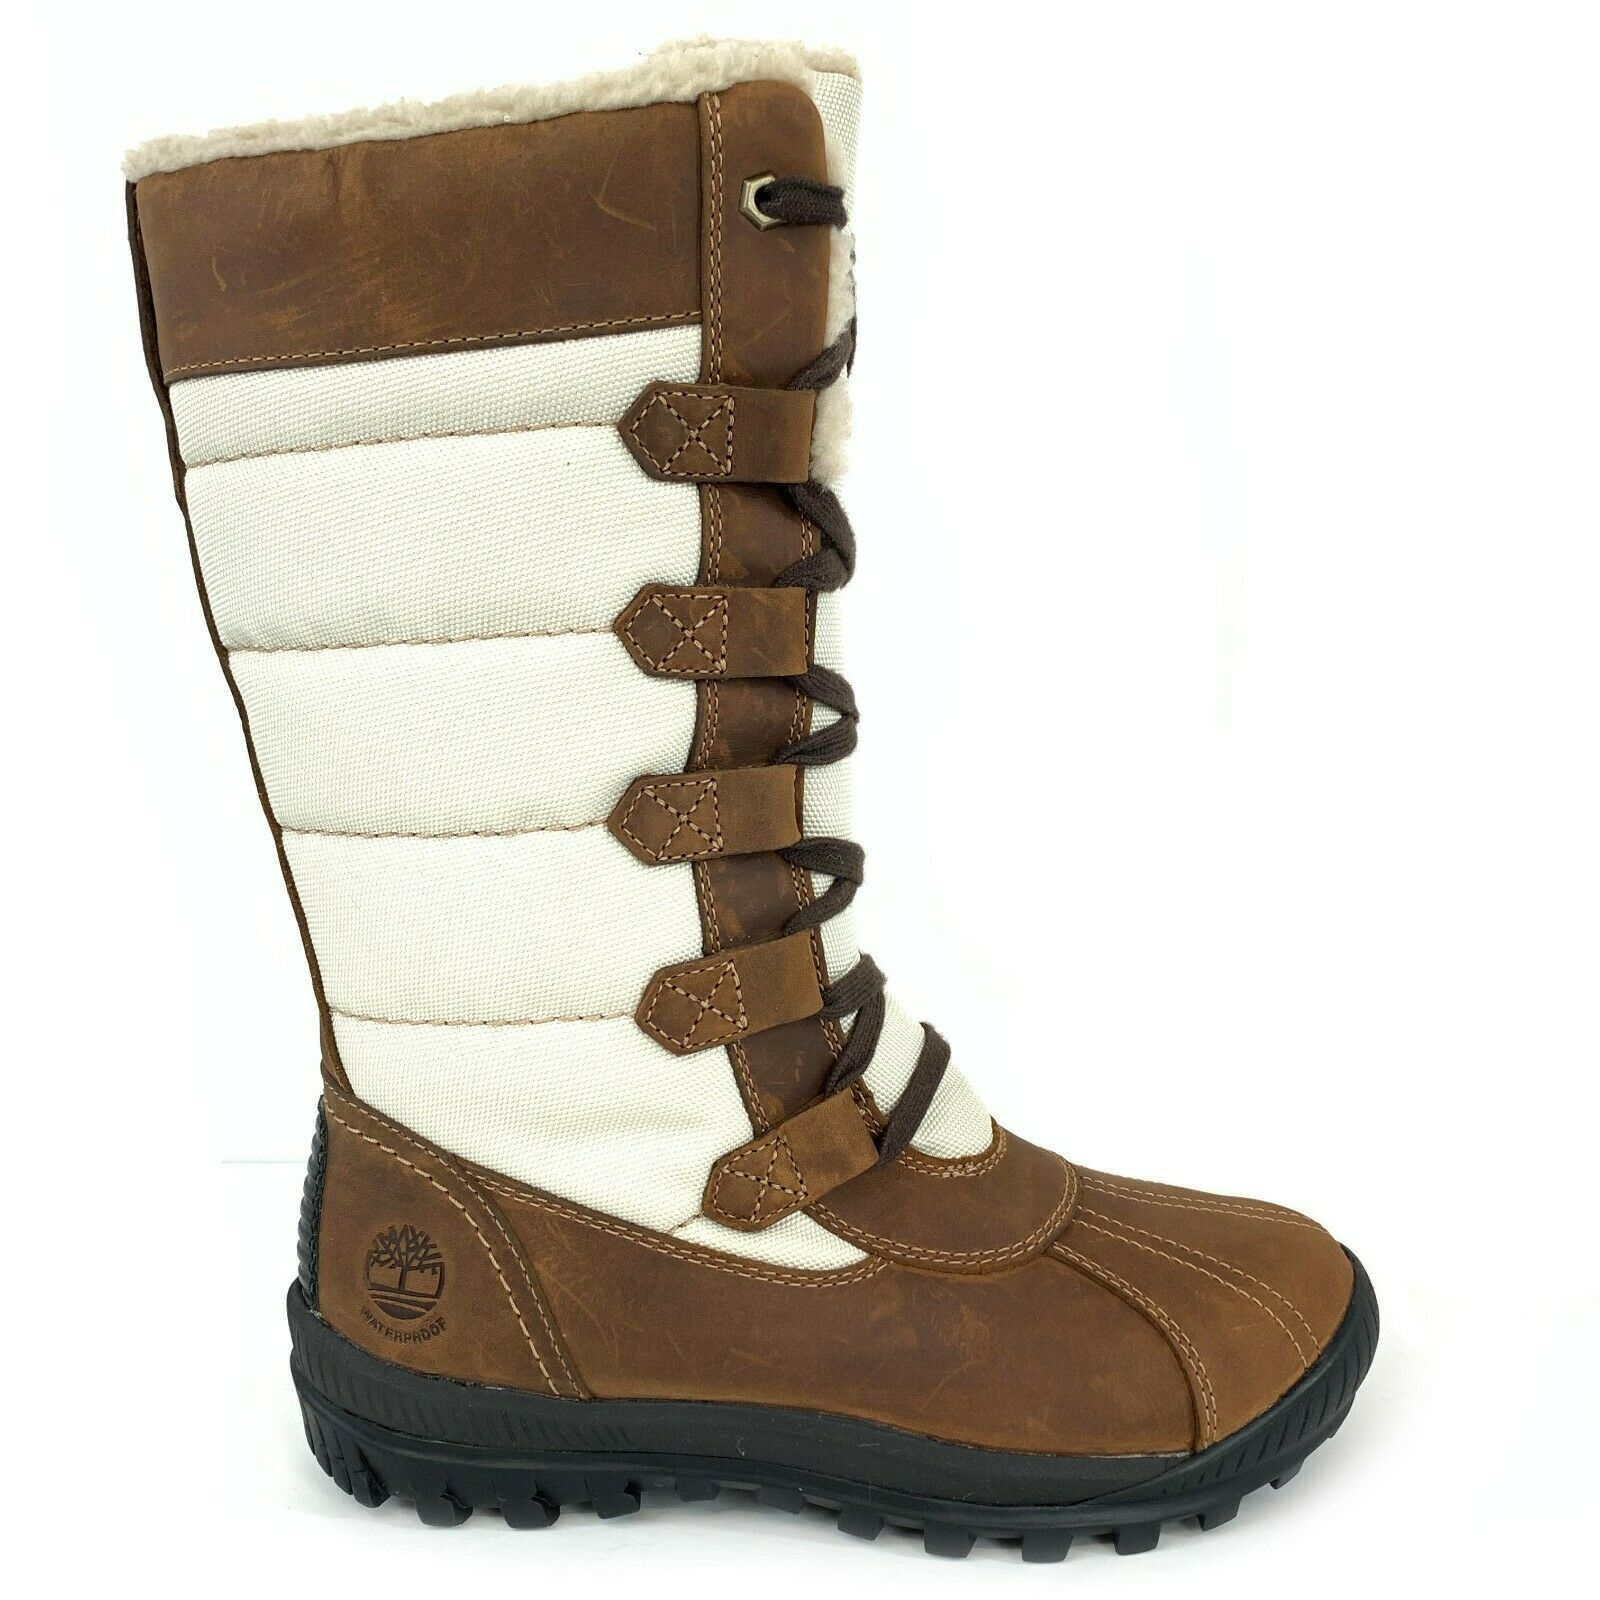 Timberland Women's MT. Hayes Tall Waterproof Brown Boots 6910B Size 6.5 1